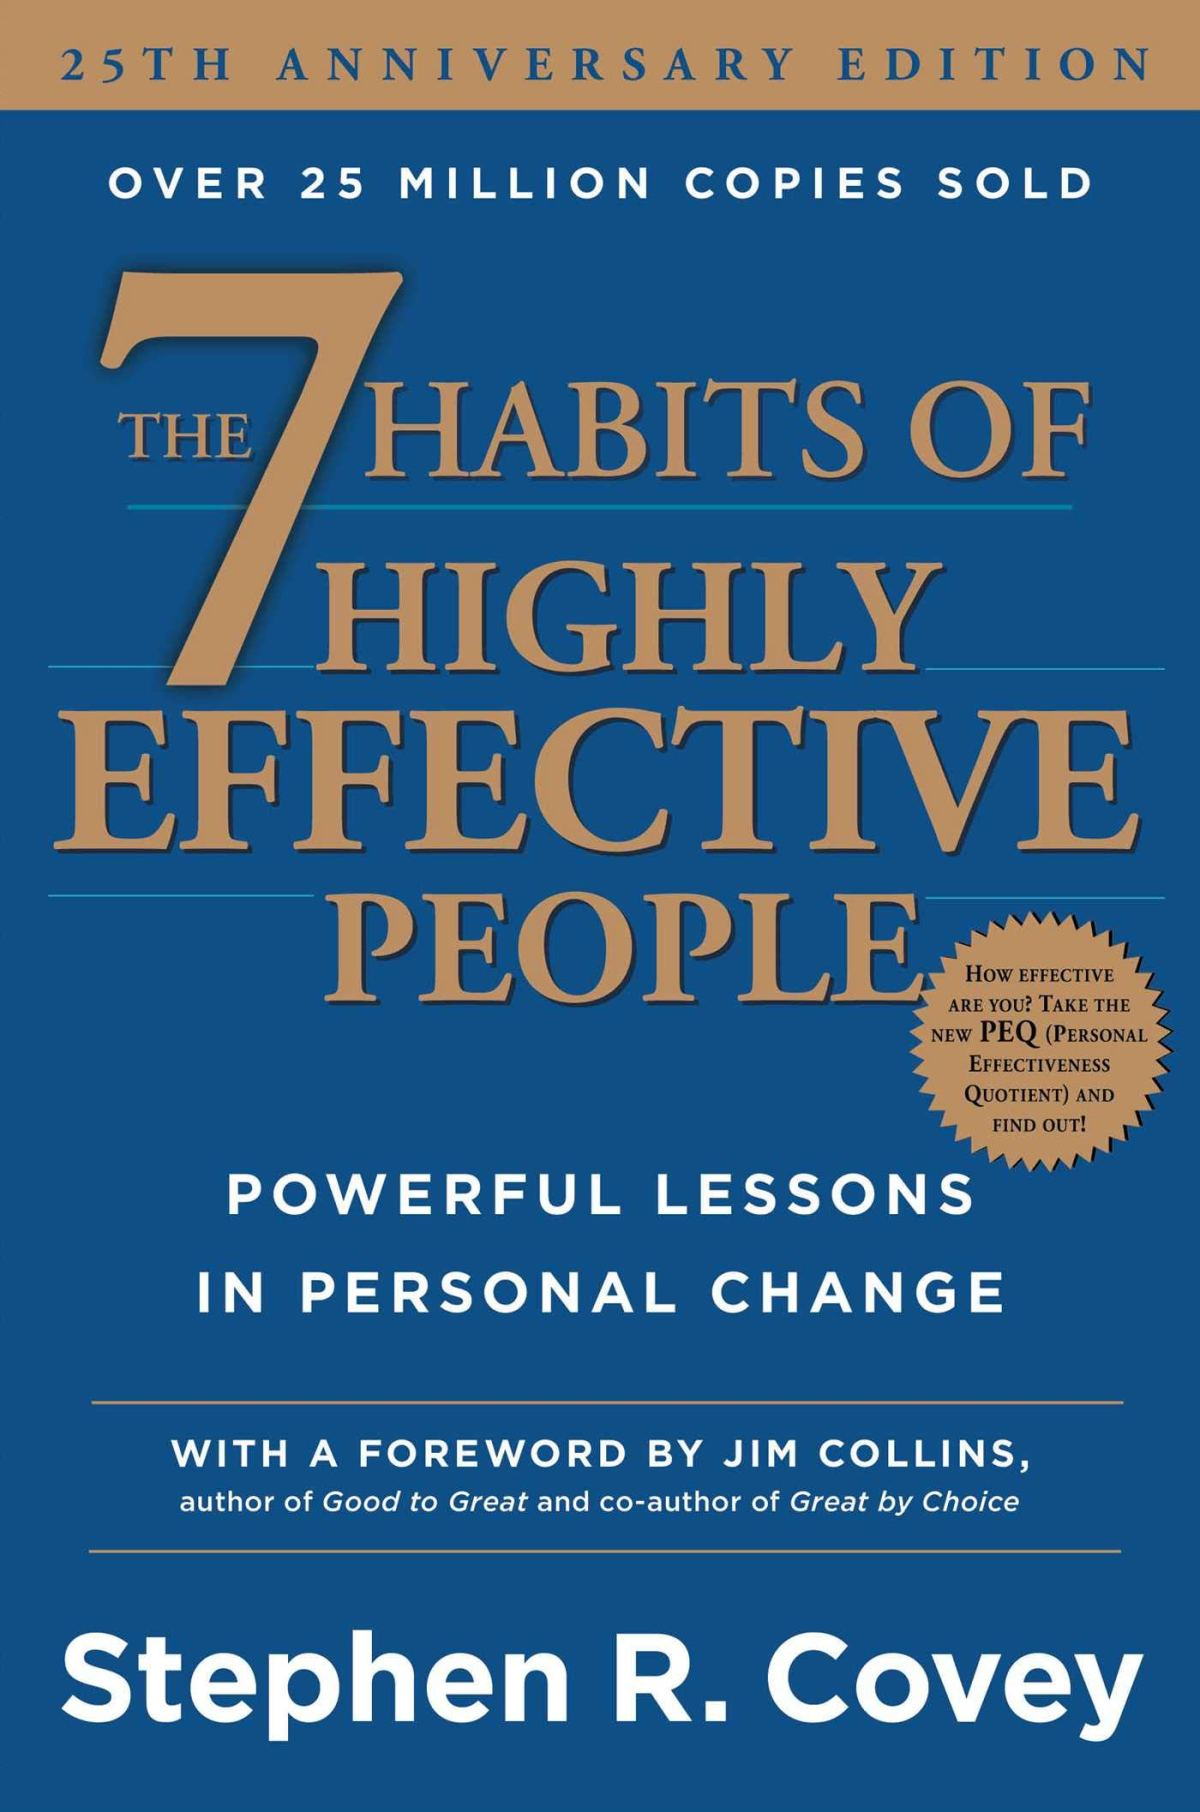 The 7 Habits of Highly Effective People ||  investments4life